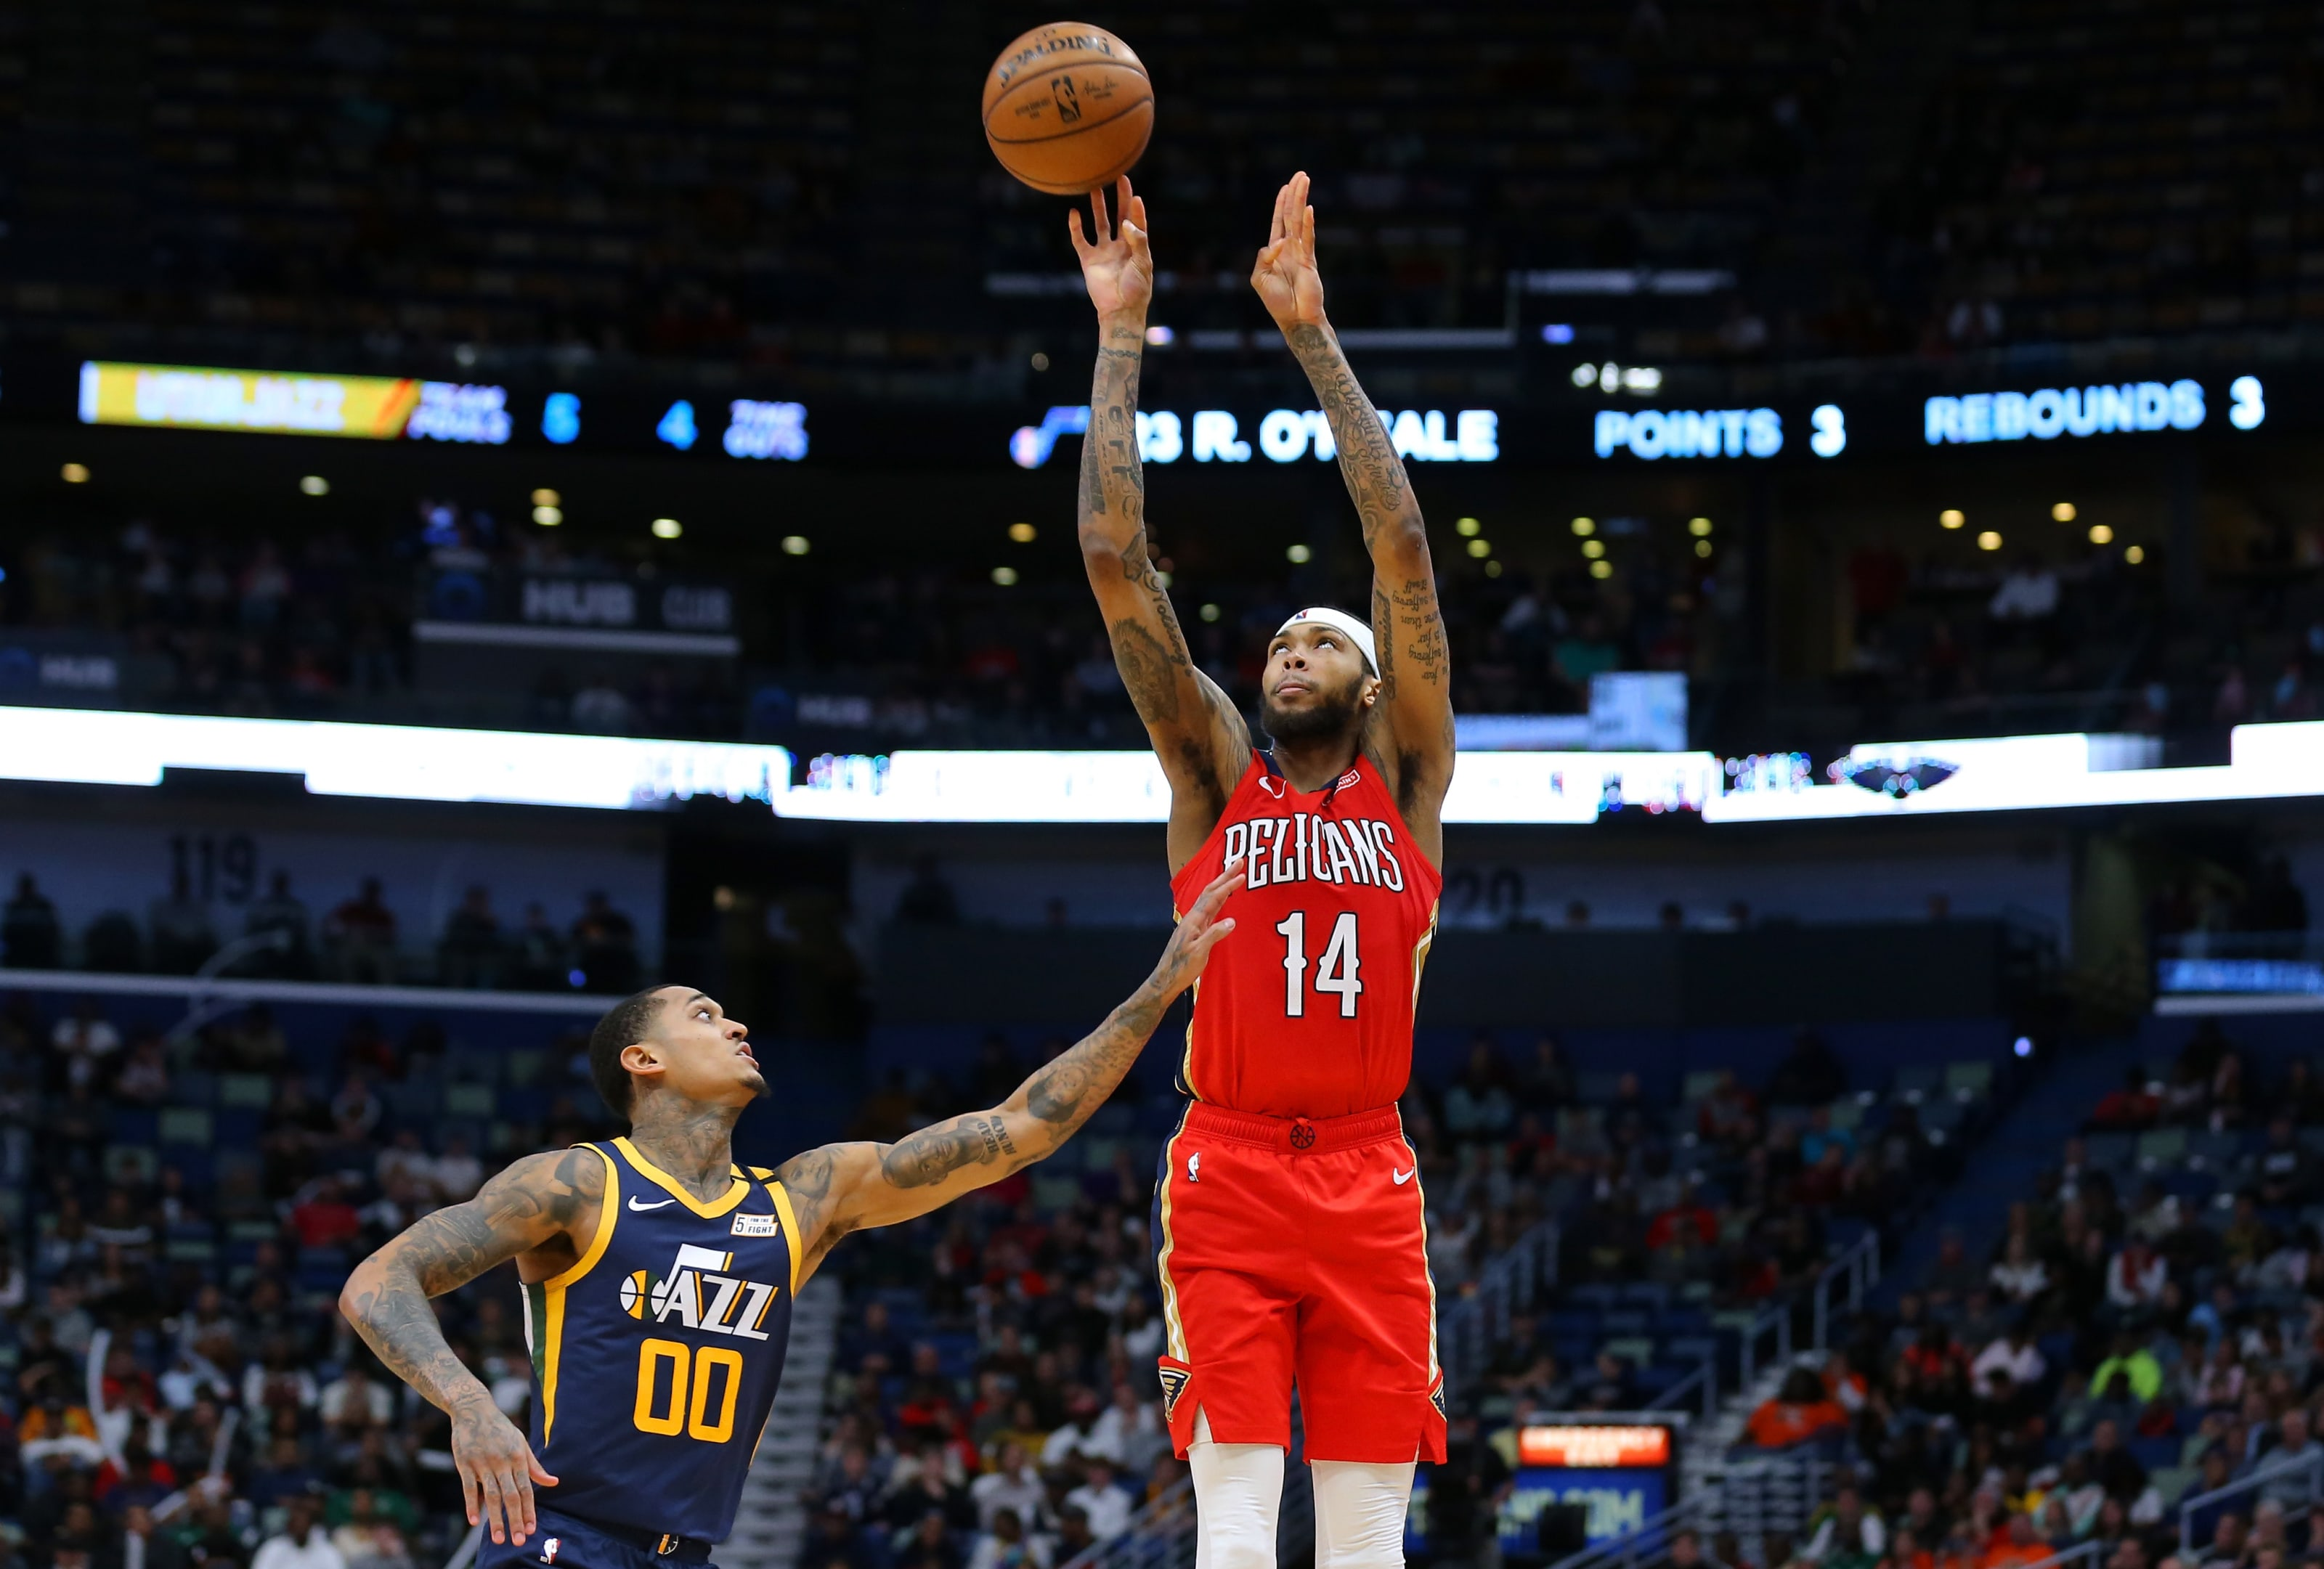 New Orleans Pelicans, Brandon Ingram